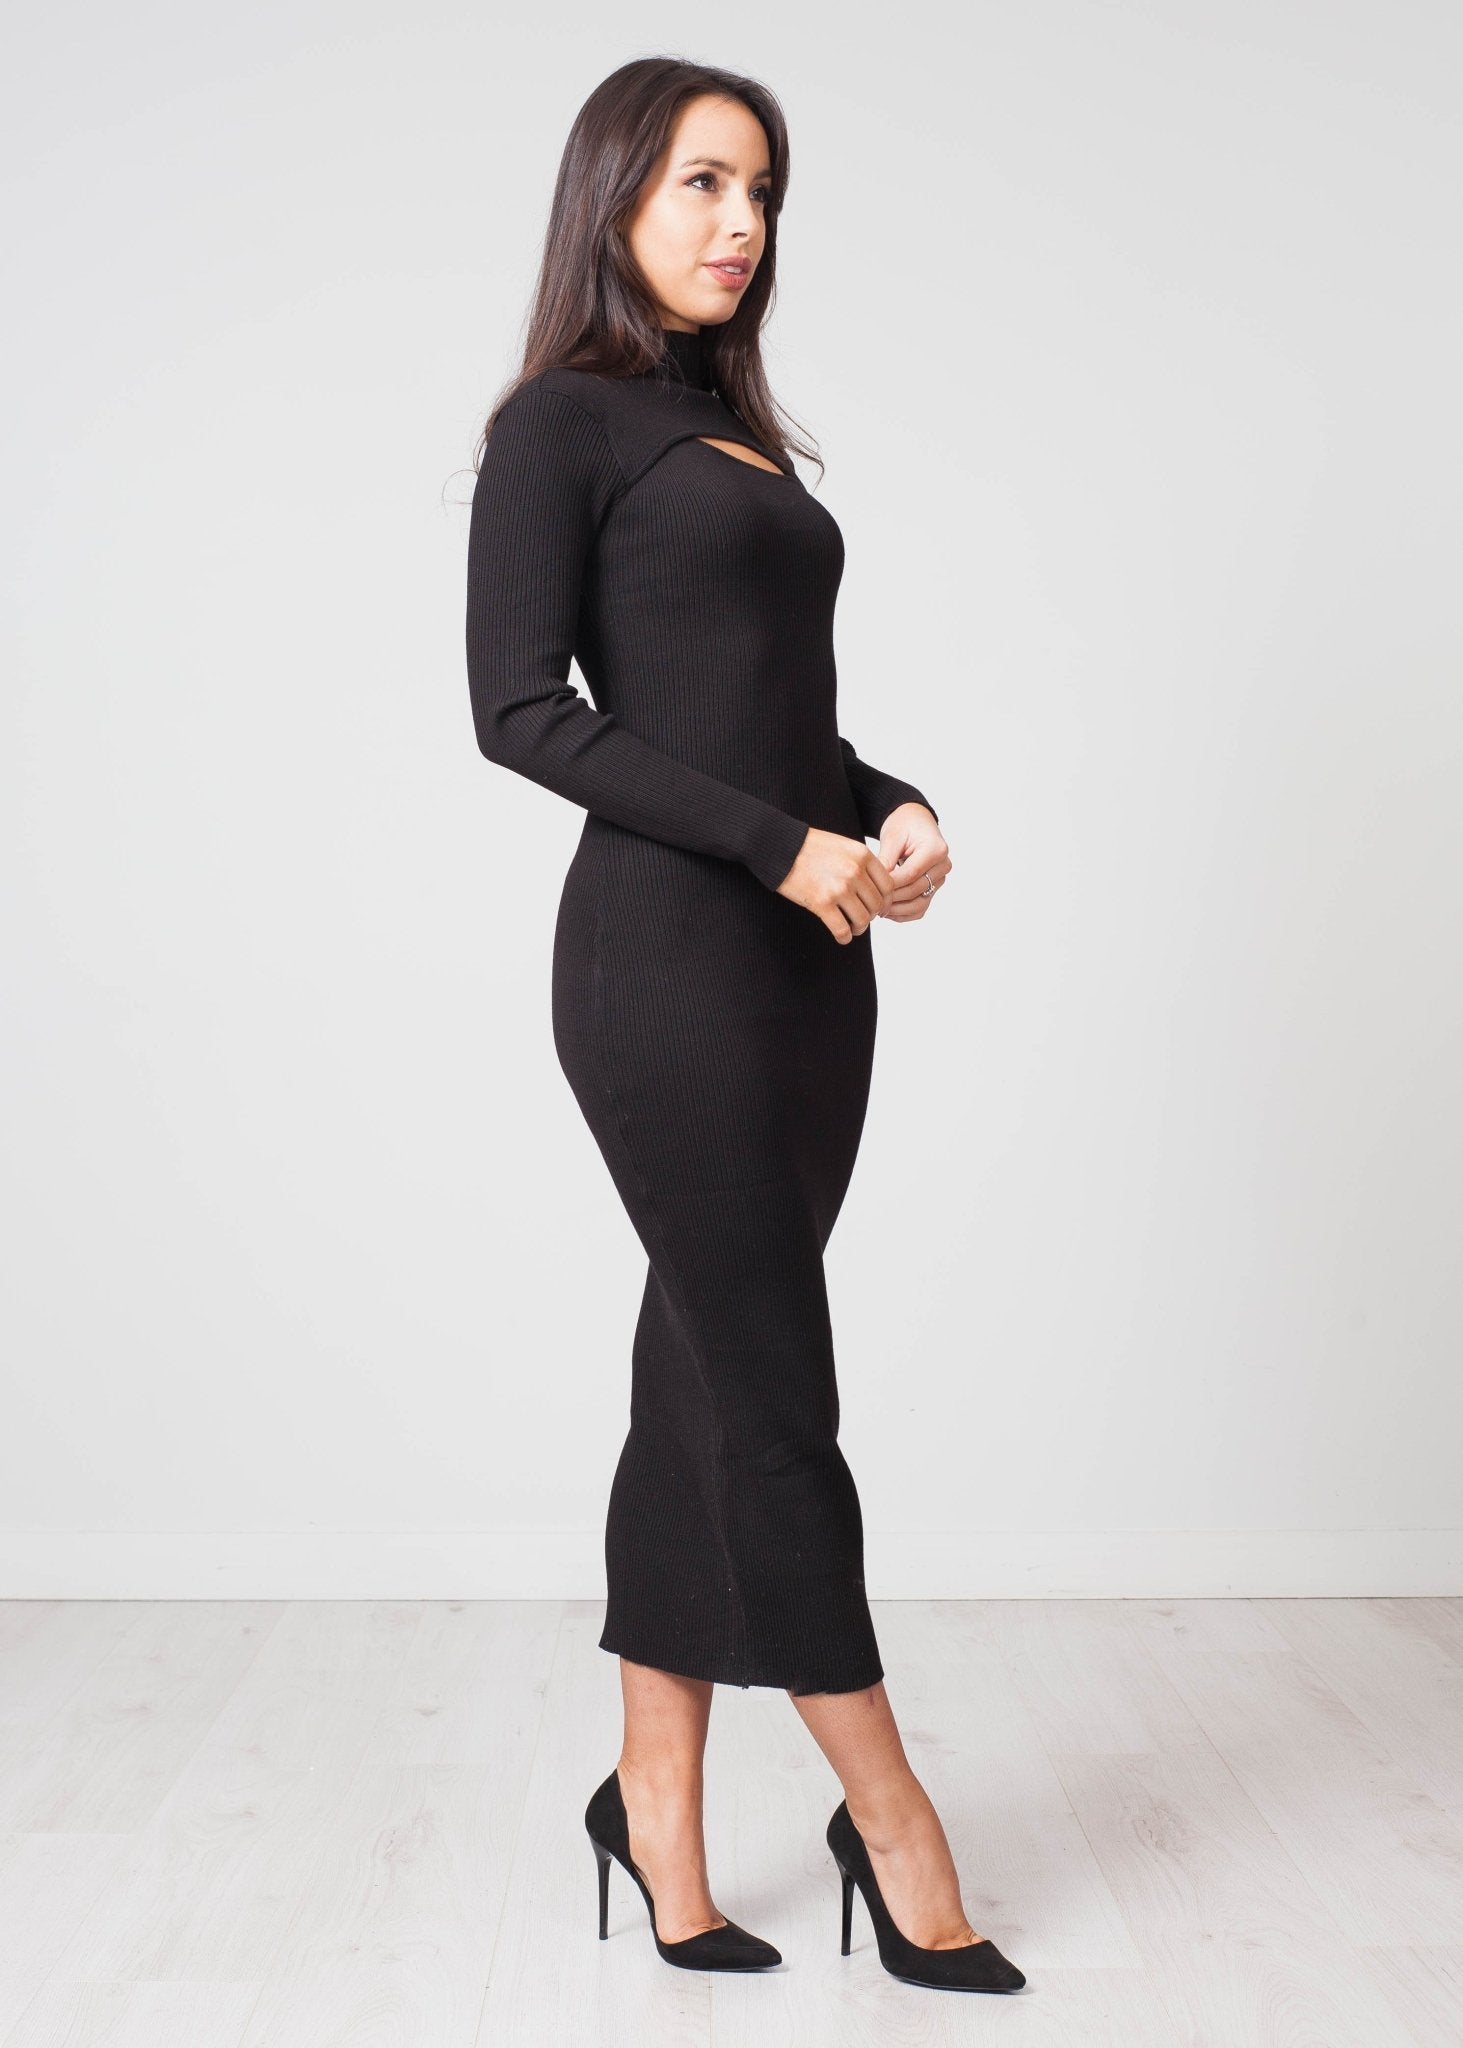 Emilia Slash Front Knit Dress In Black - The Walk in Wardrobe